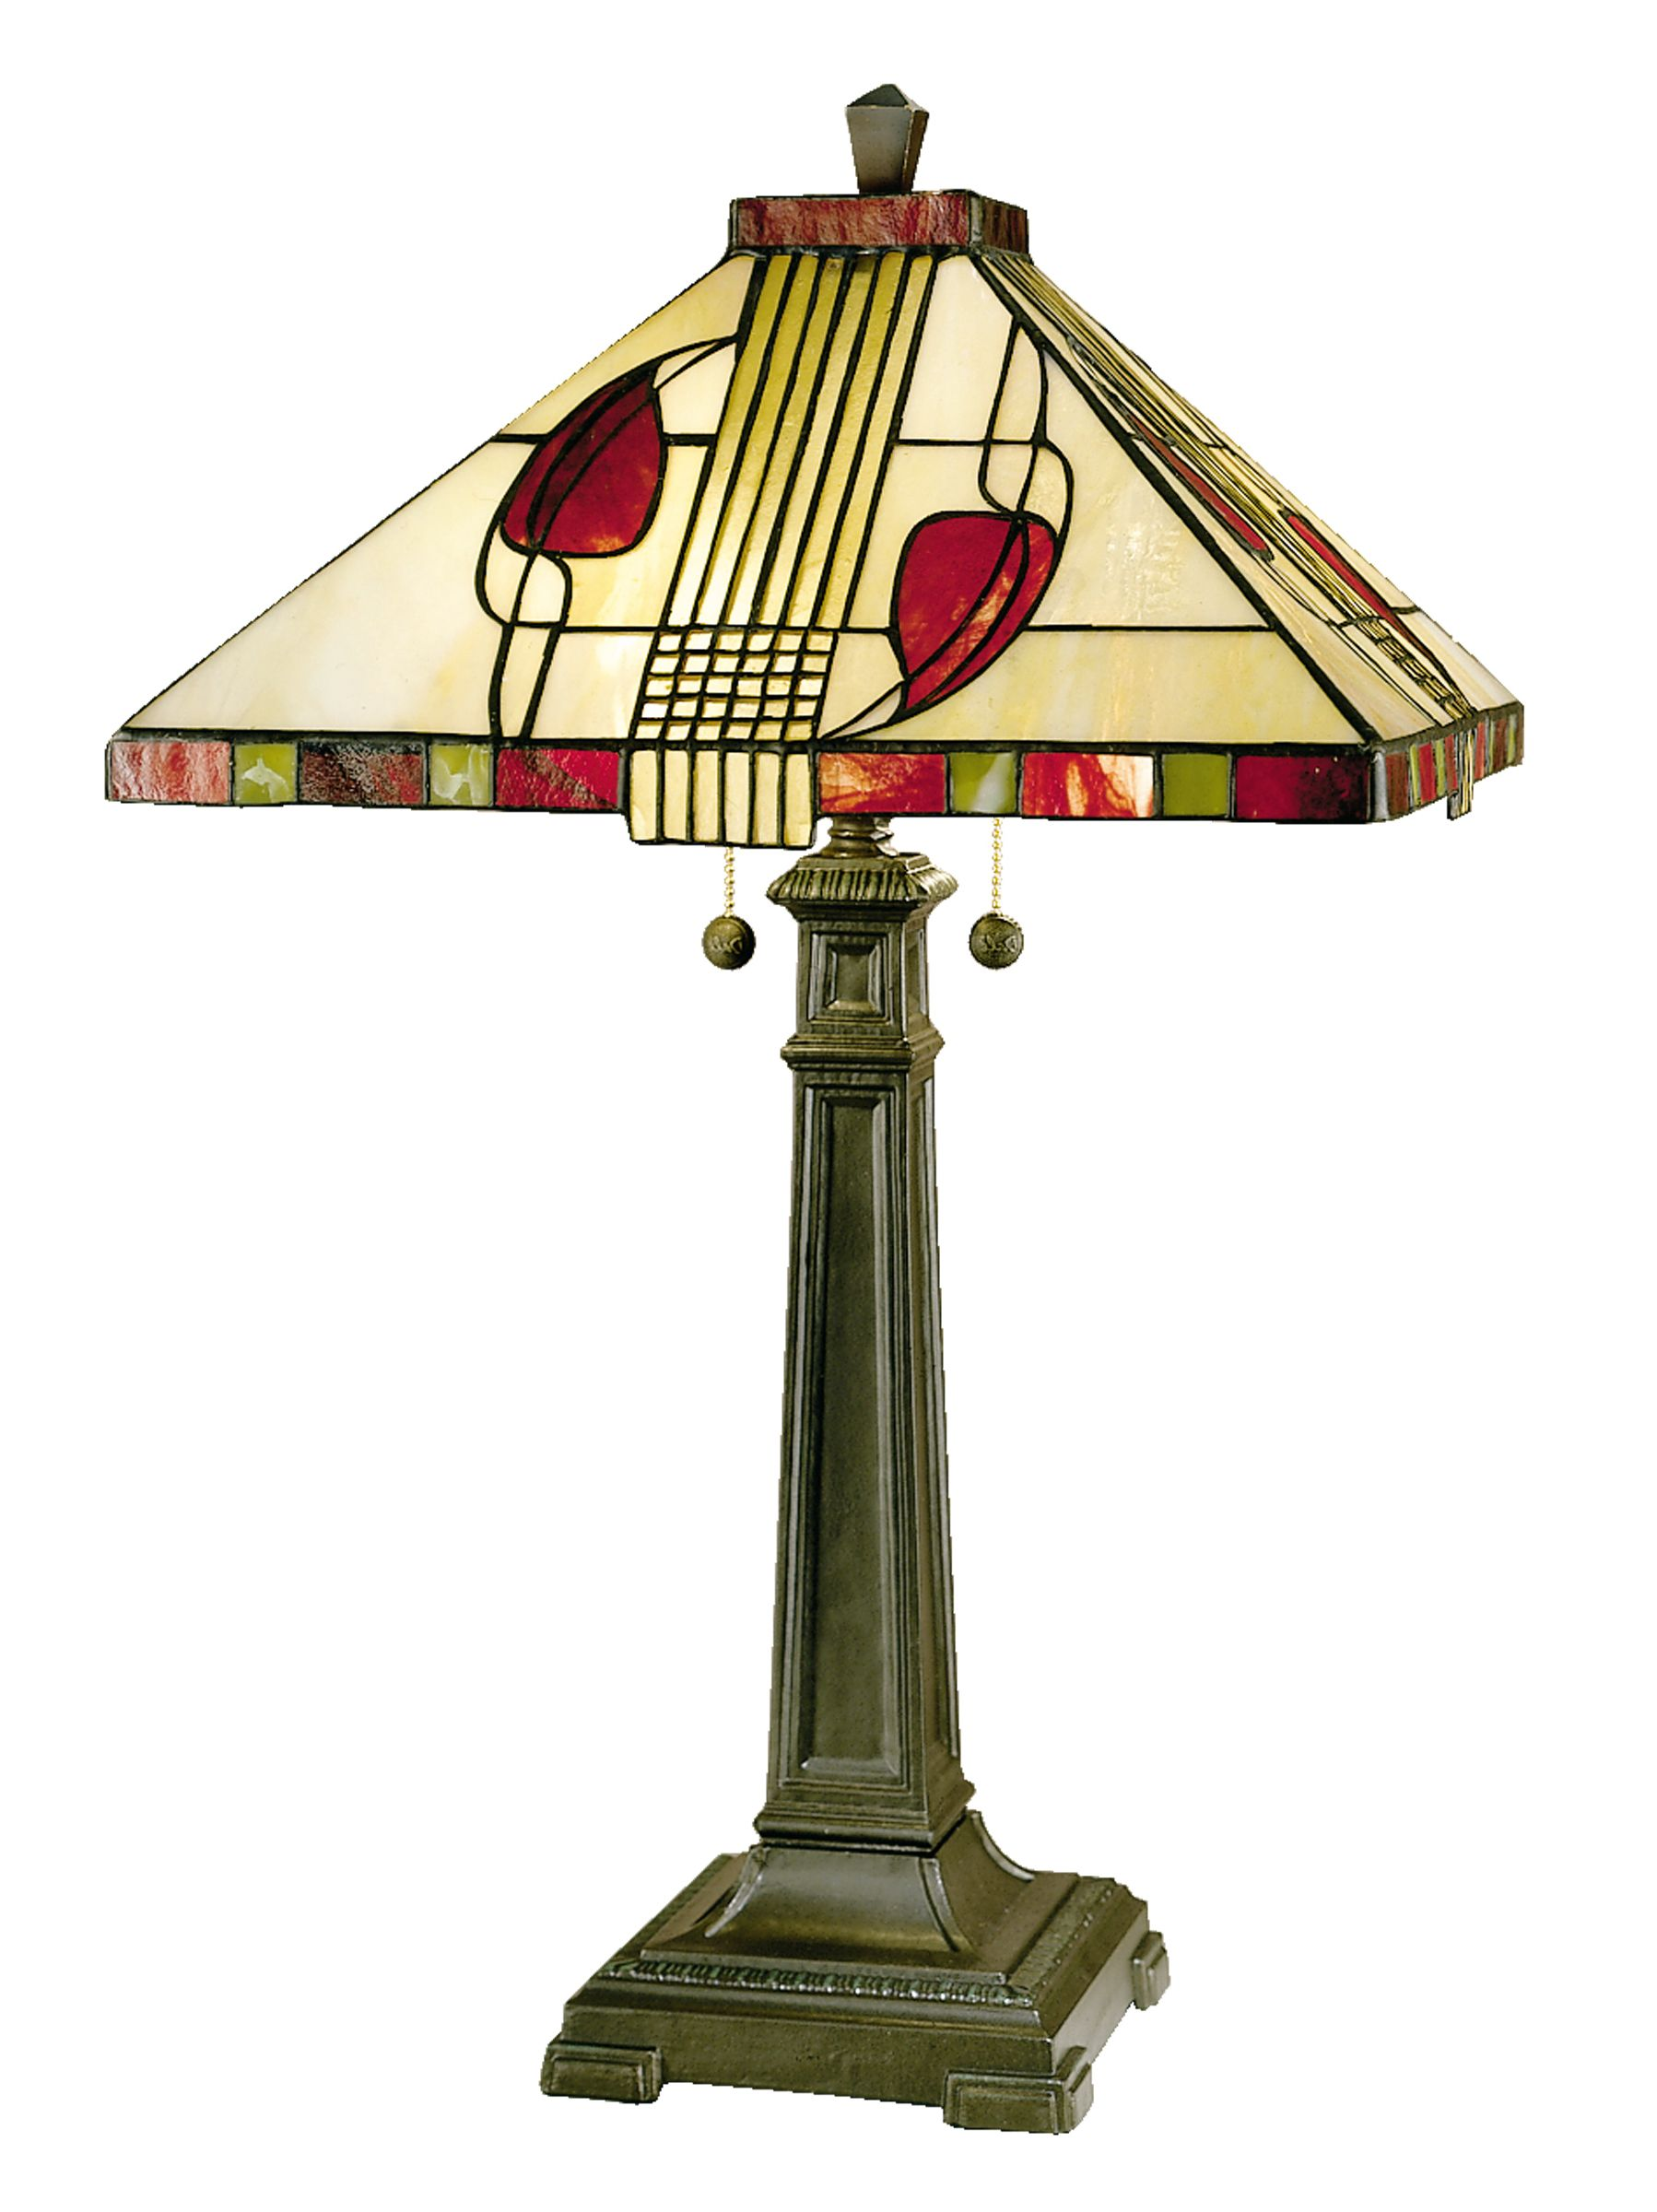 Antique tiffany table lamps - Antique Tiffany Lamps 2721 Henderson Table Lamp Table Lamp Antique Dale Tiffany